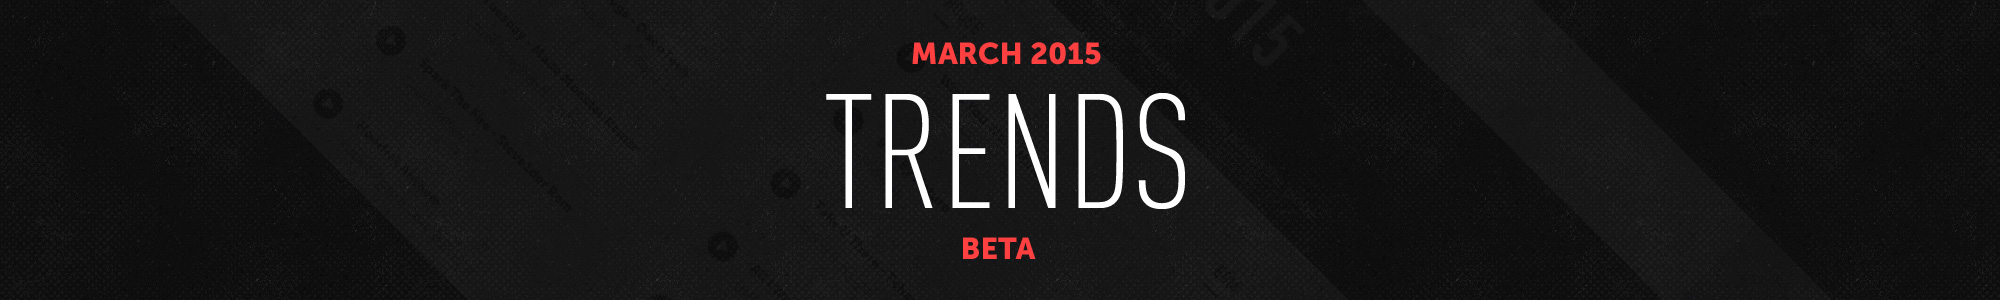 DJcity Trends Charts Page